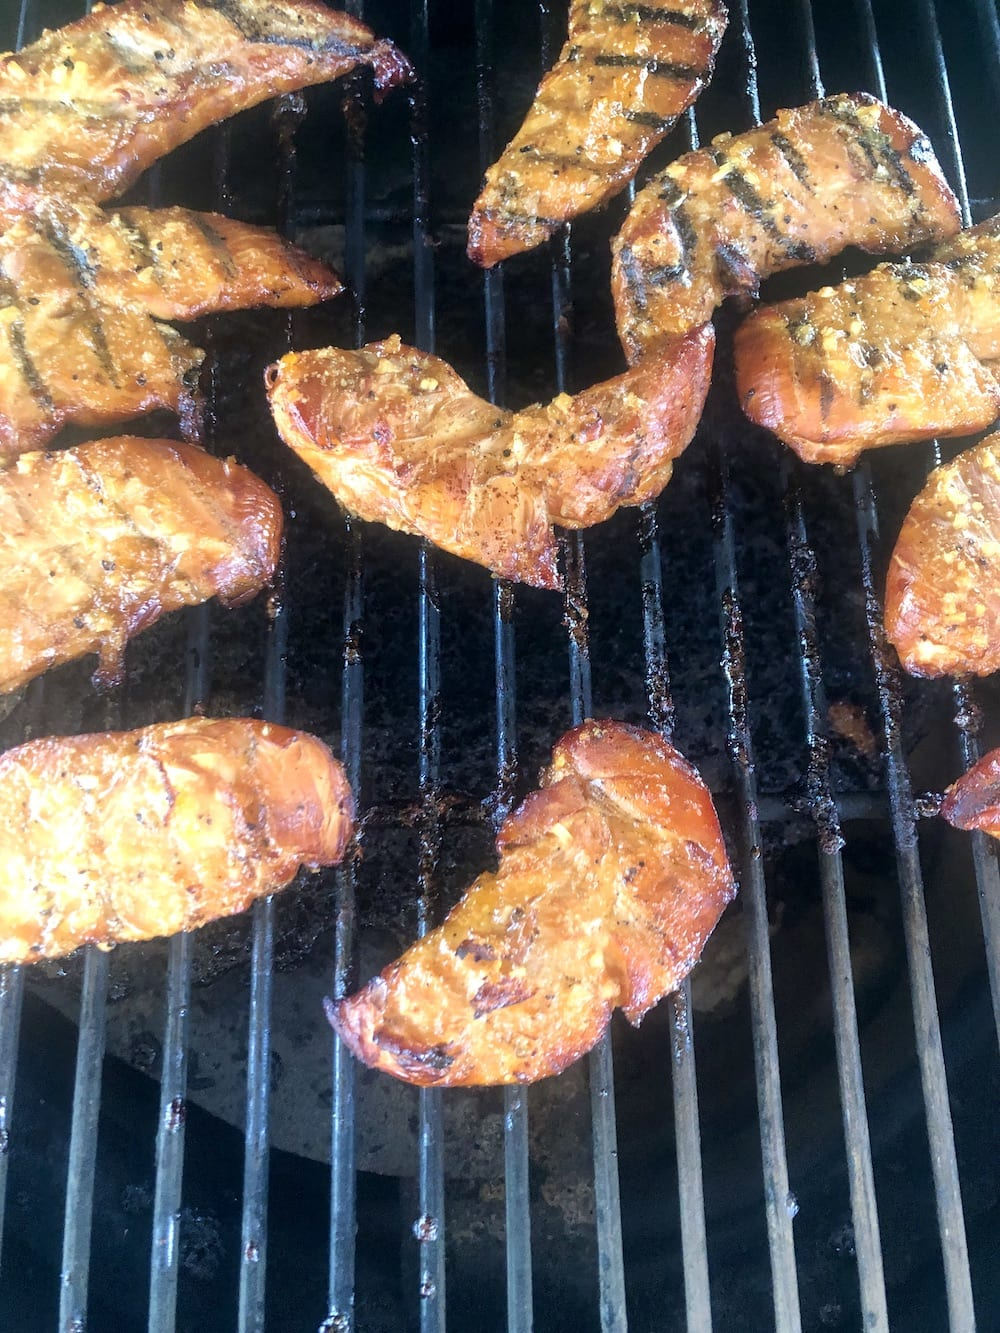 Apricot chicken tenders on a grill